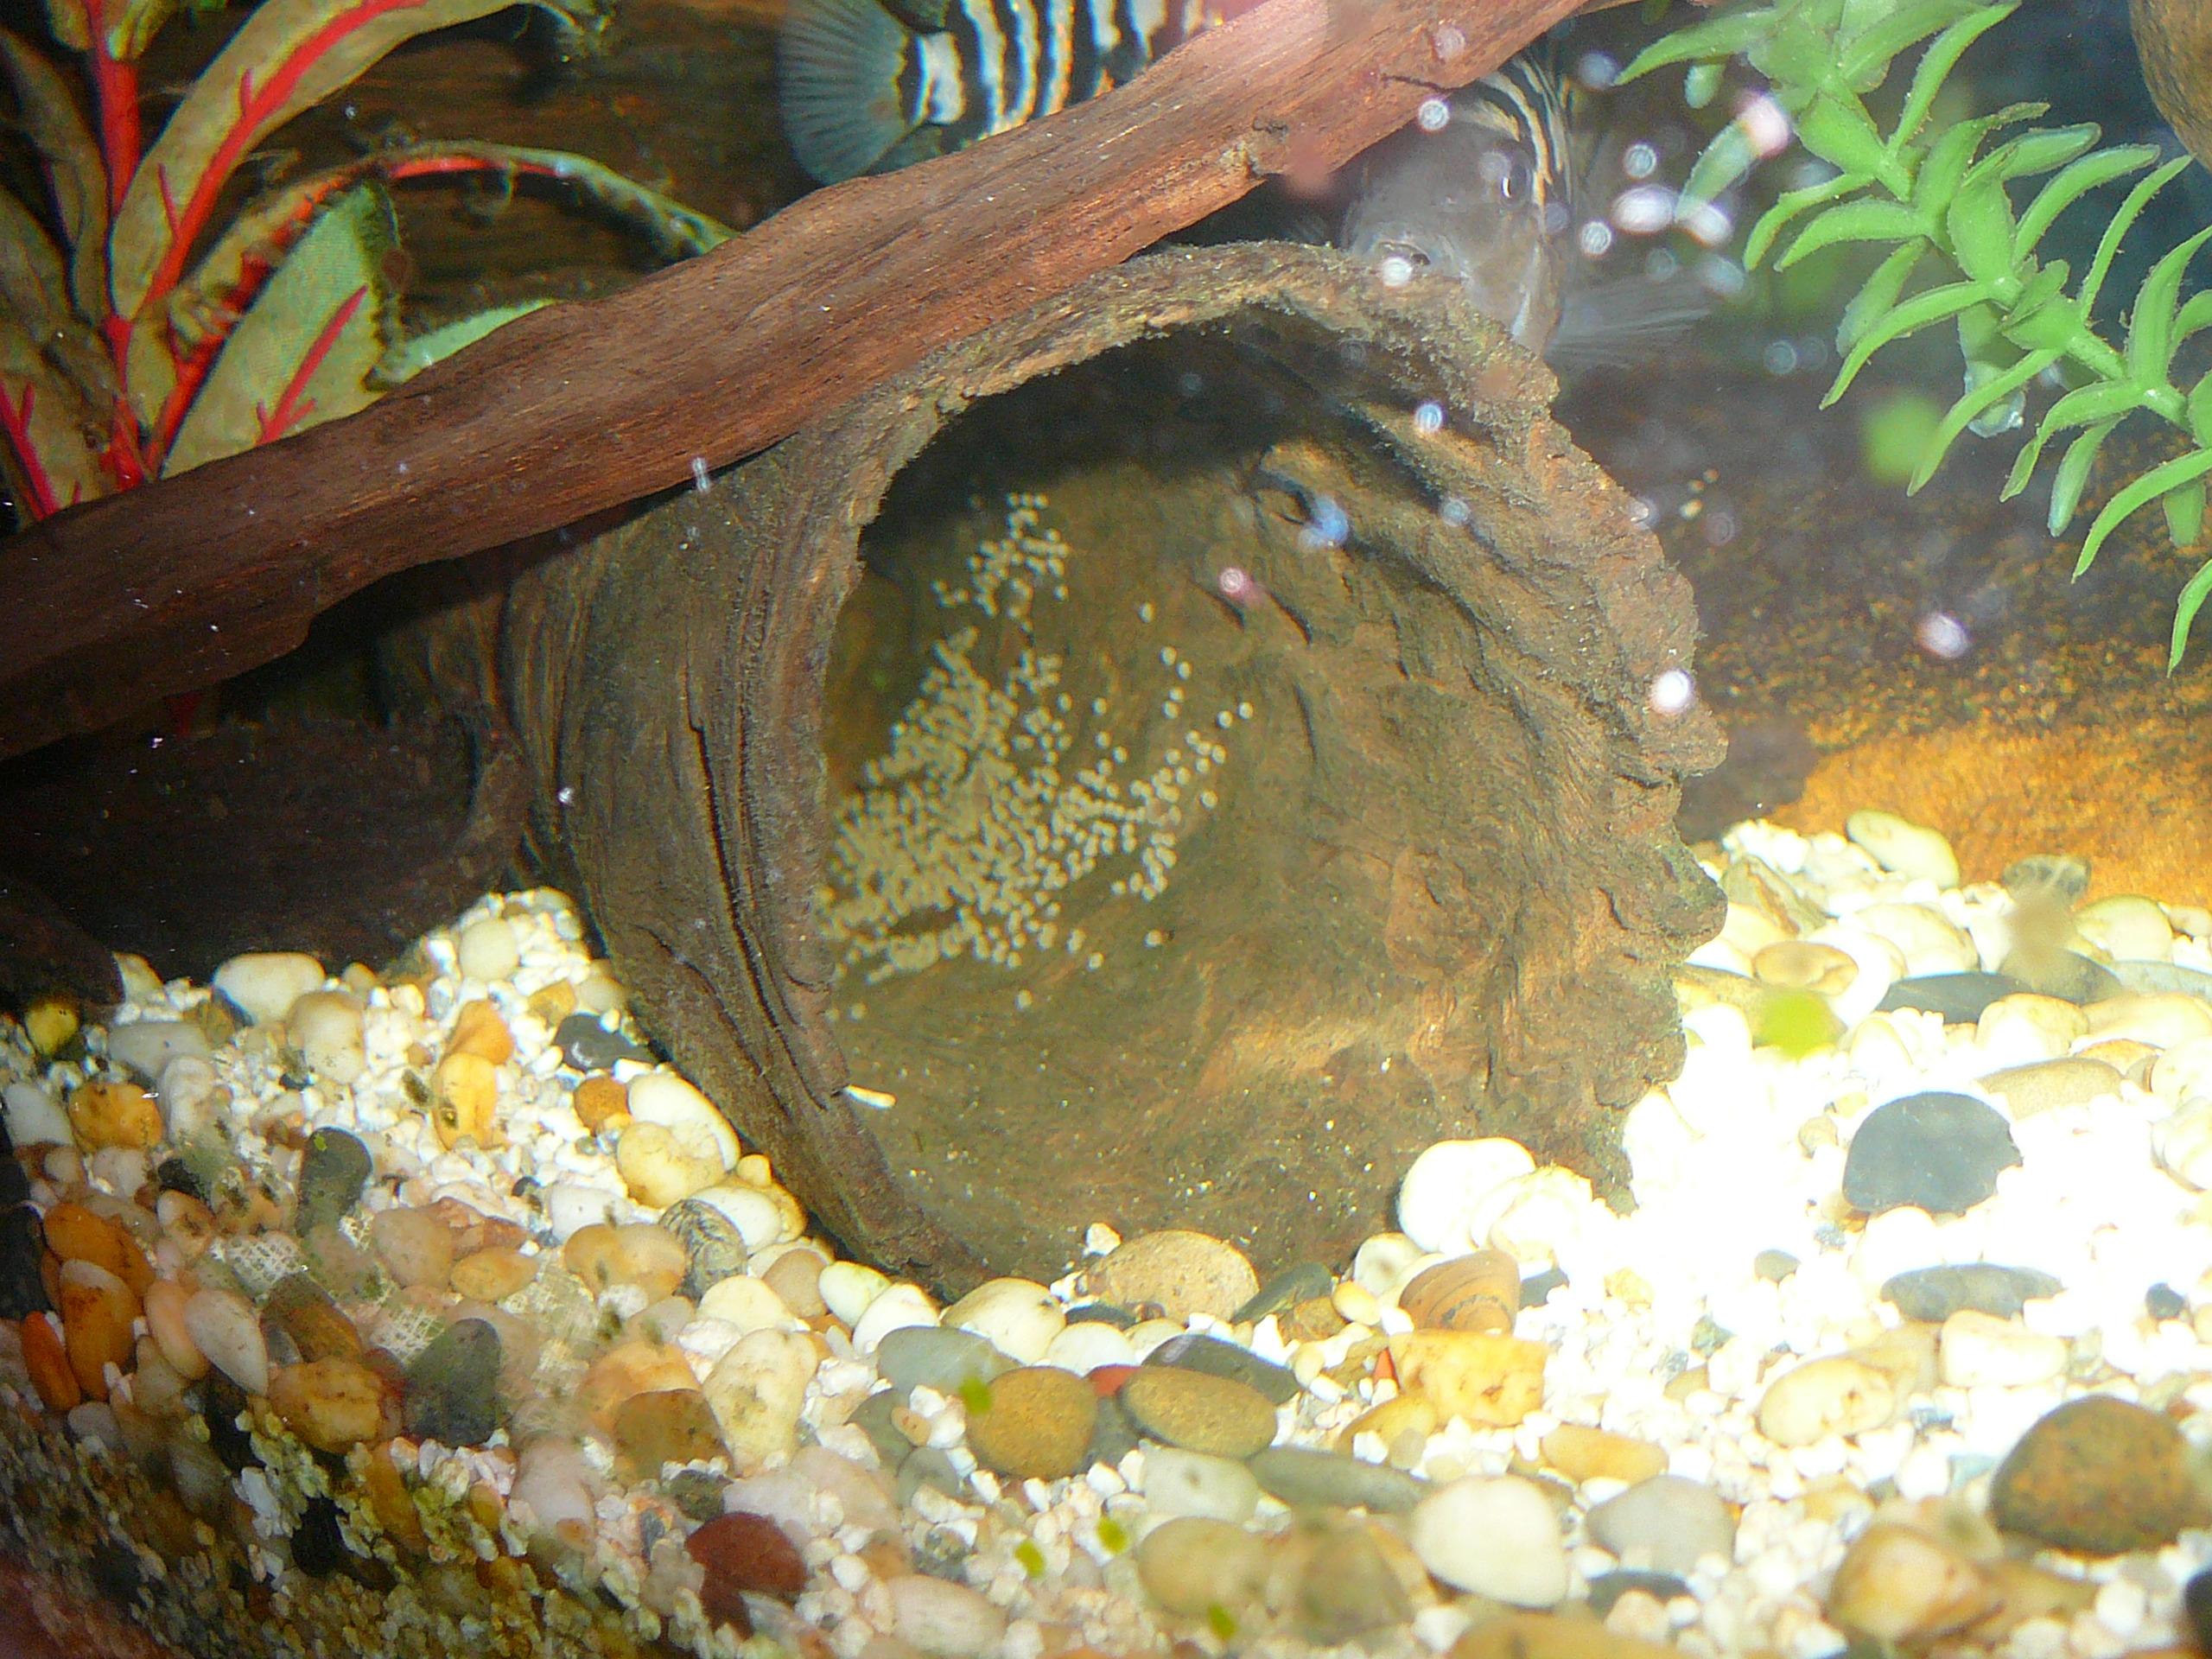 how to tell male and female convict cichlids apart